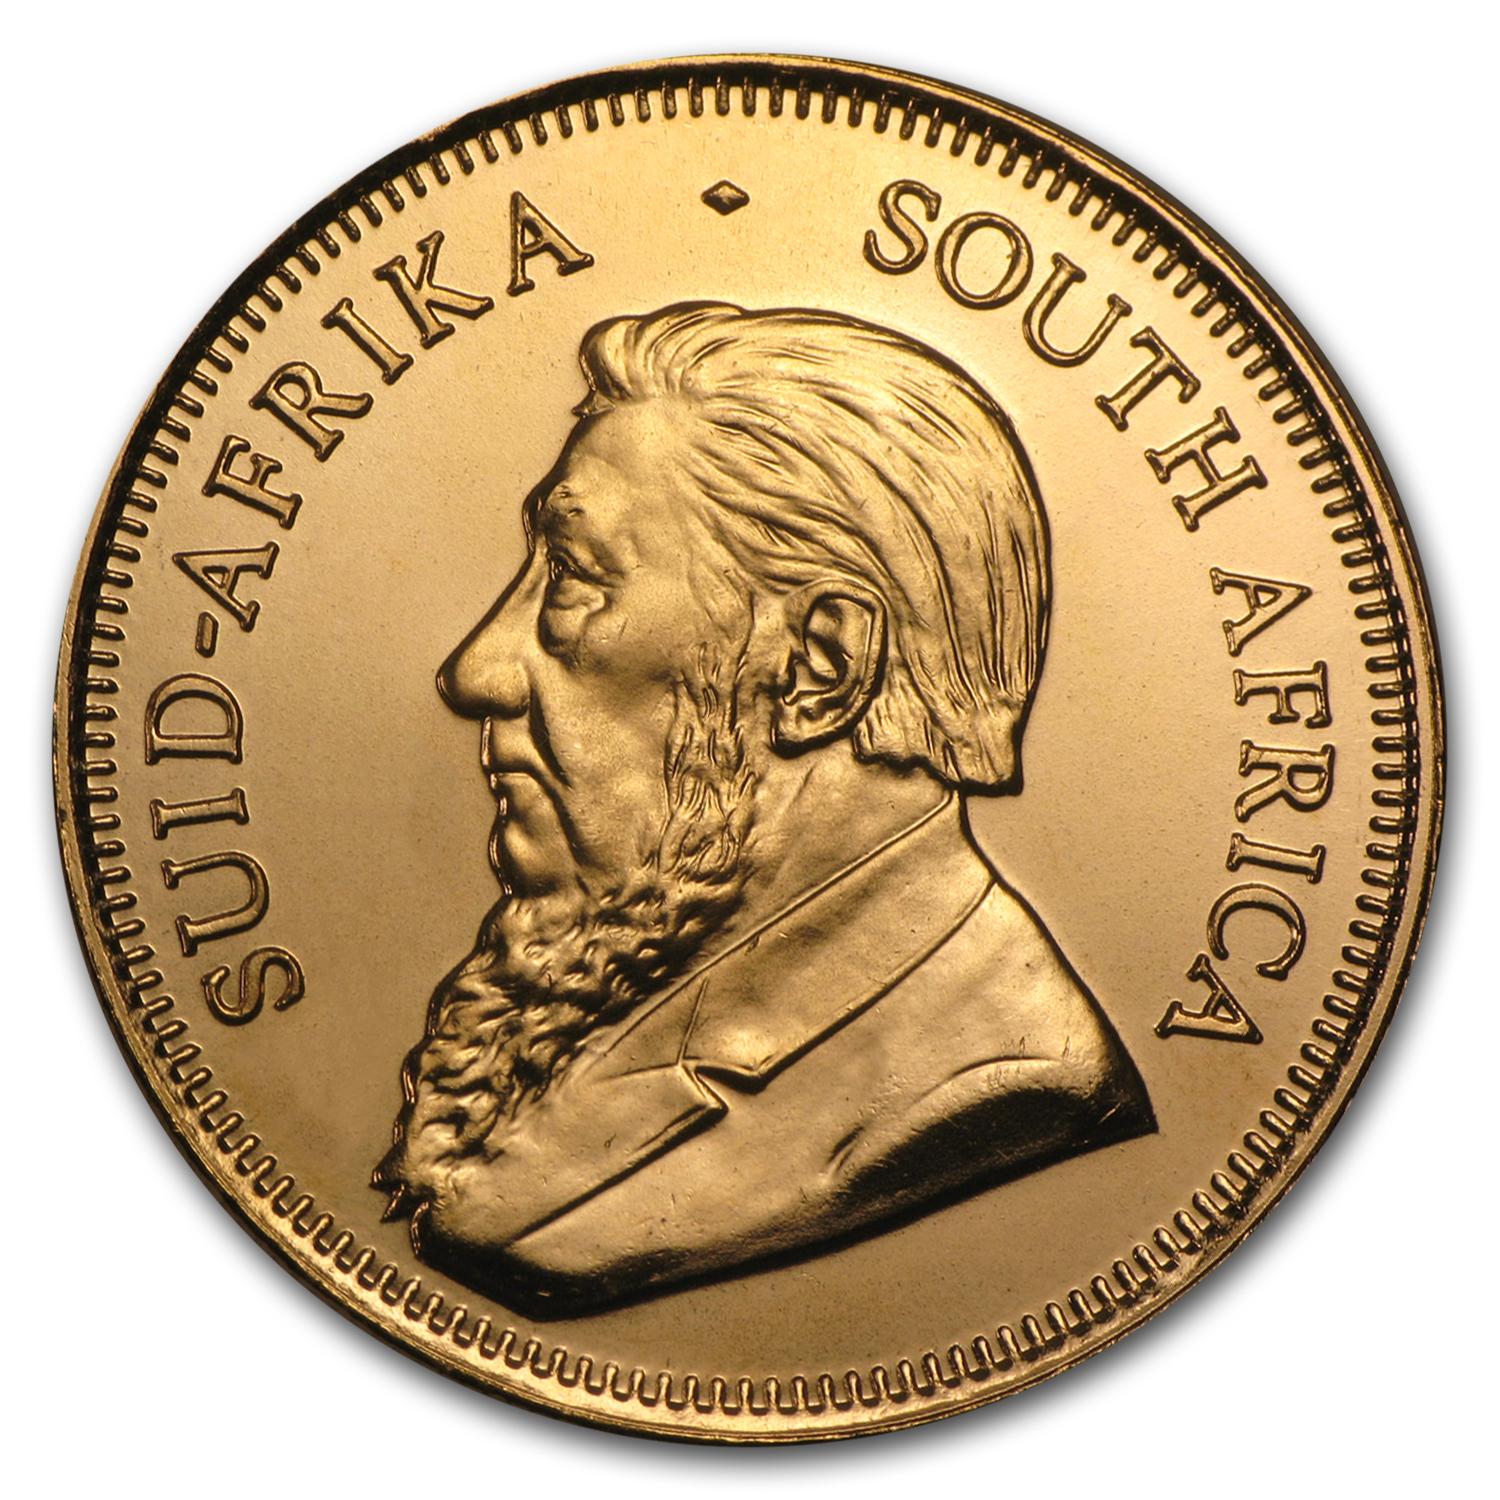 2010 1 oz Gold South African Krugerrand